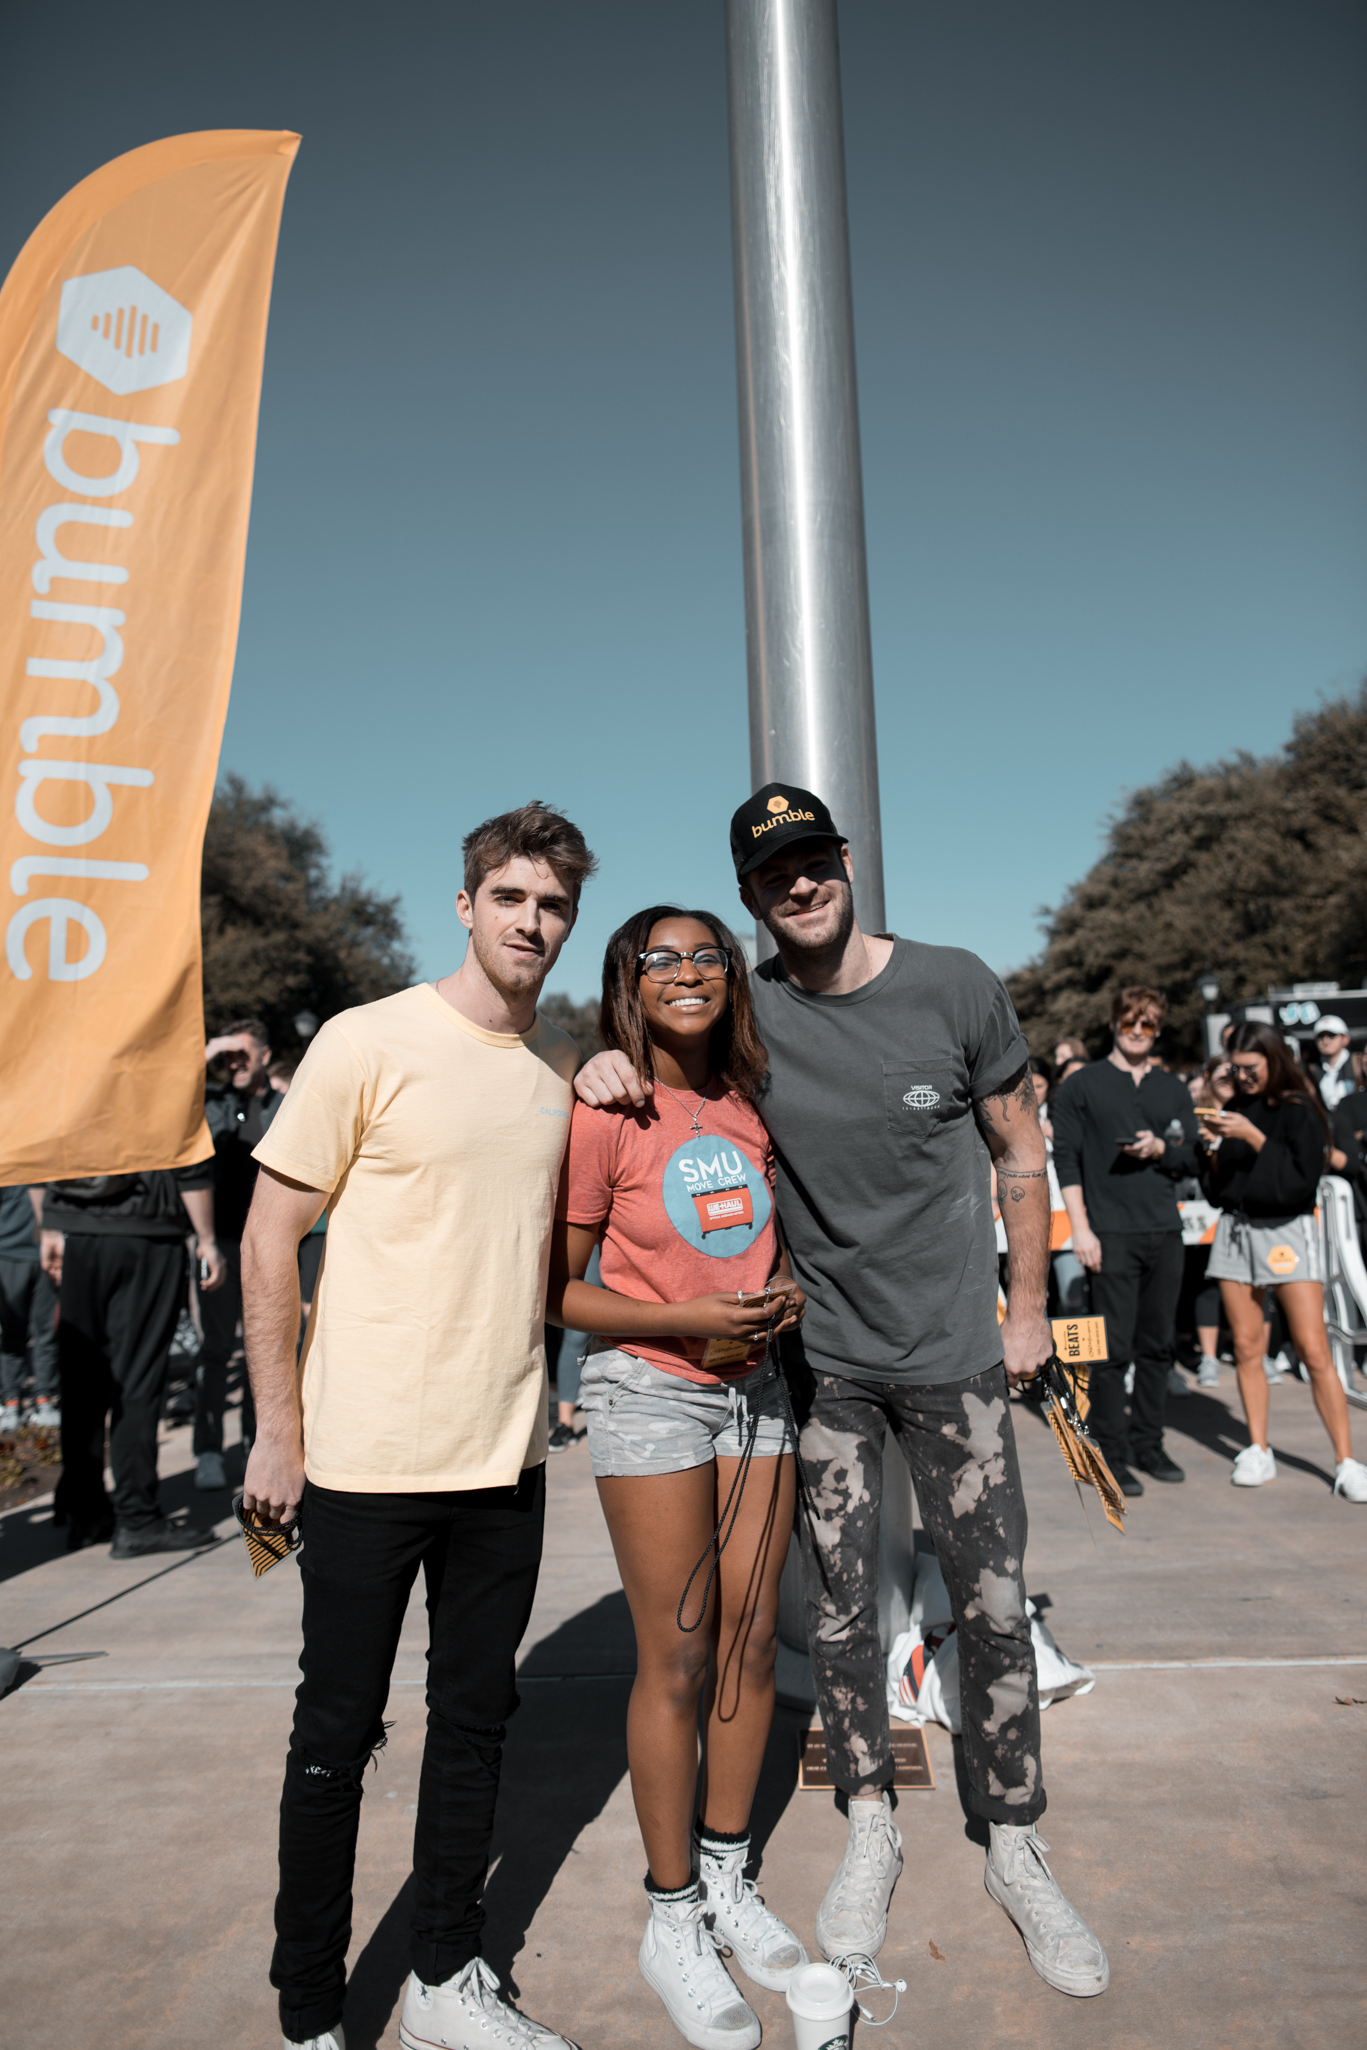 Chainsmokers x Bumble 3-5-small.jpg